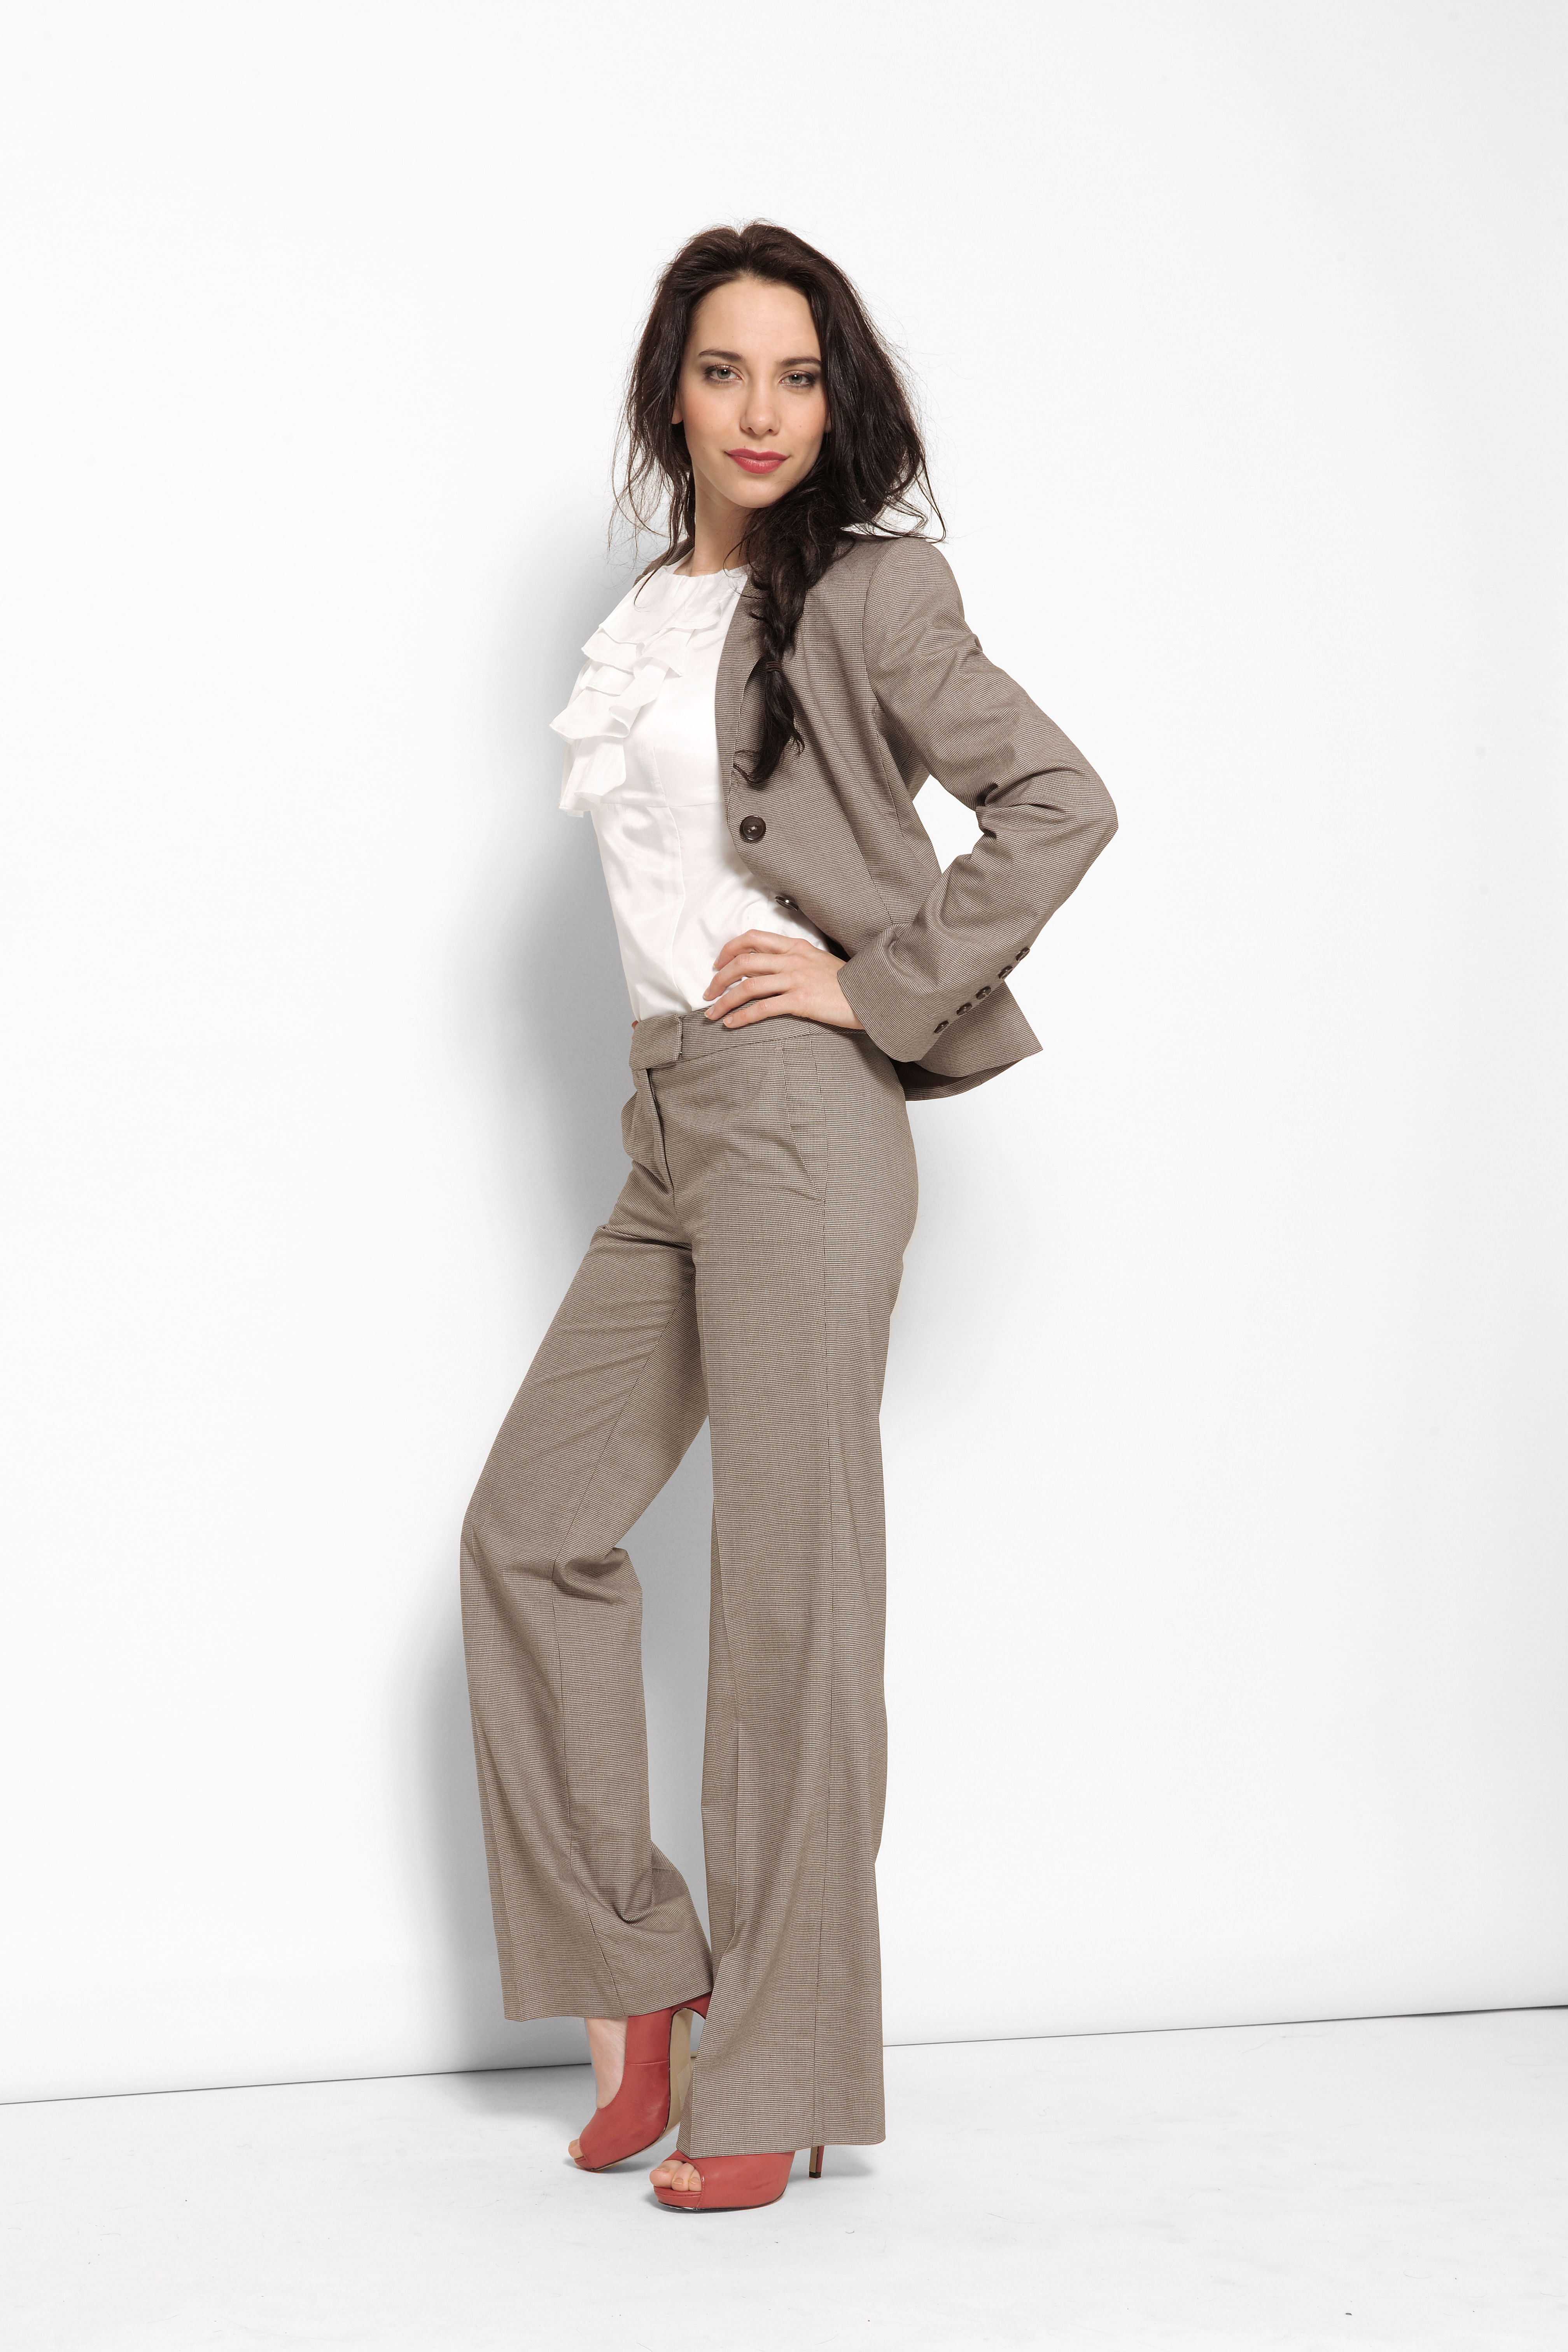 WearItToWork... Fashionable Business Attire For Young Women